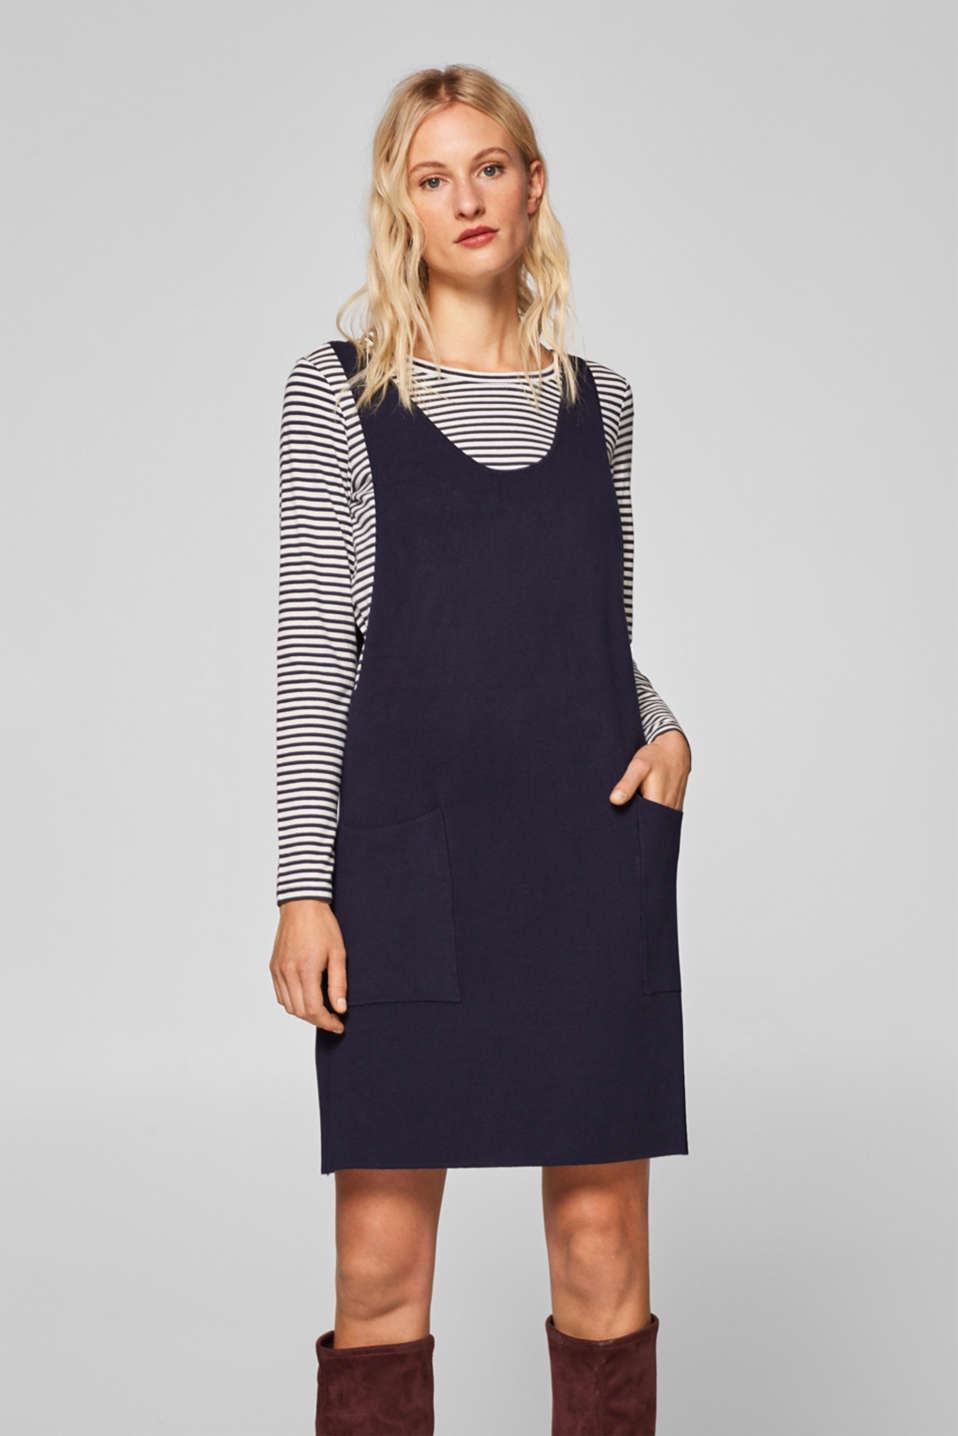 edc - 2-in-1 dress with a striped long sleeve top